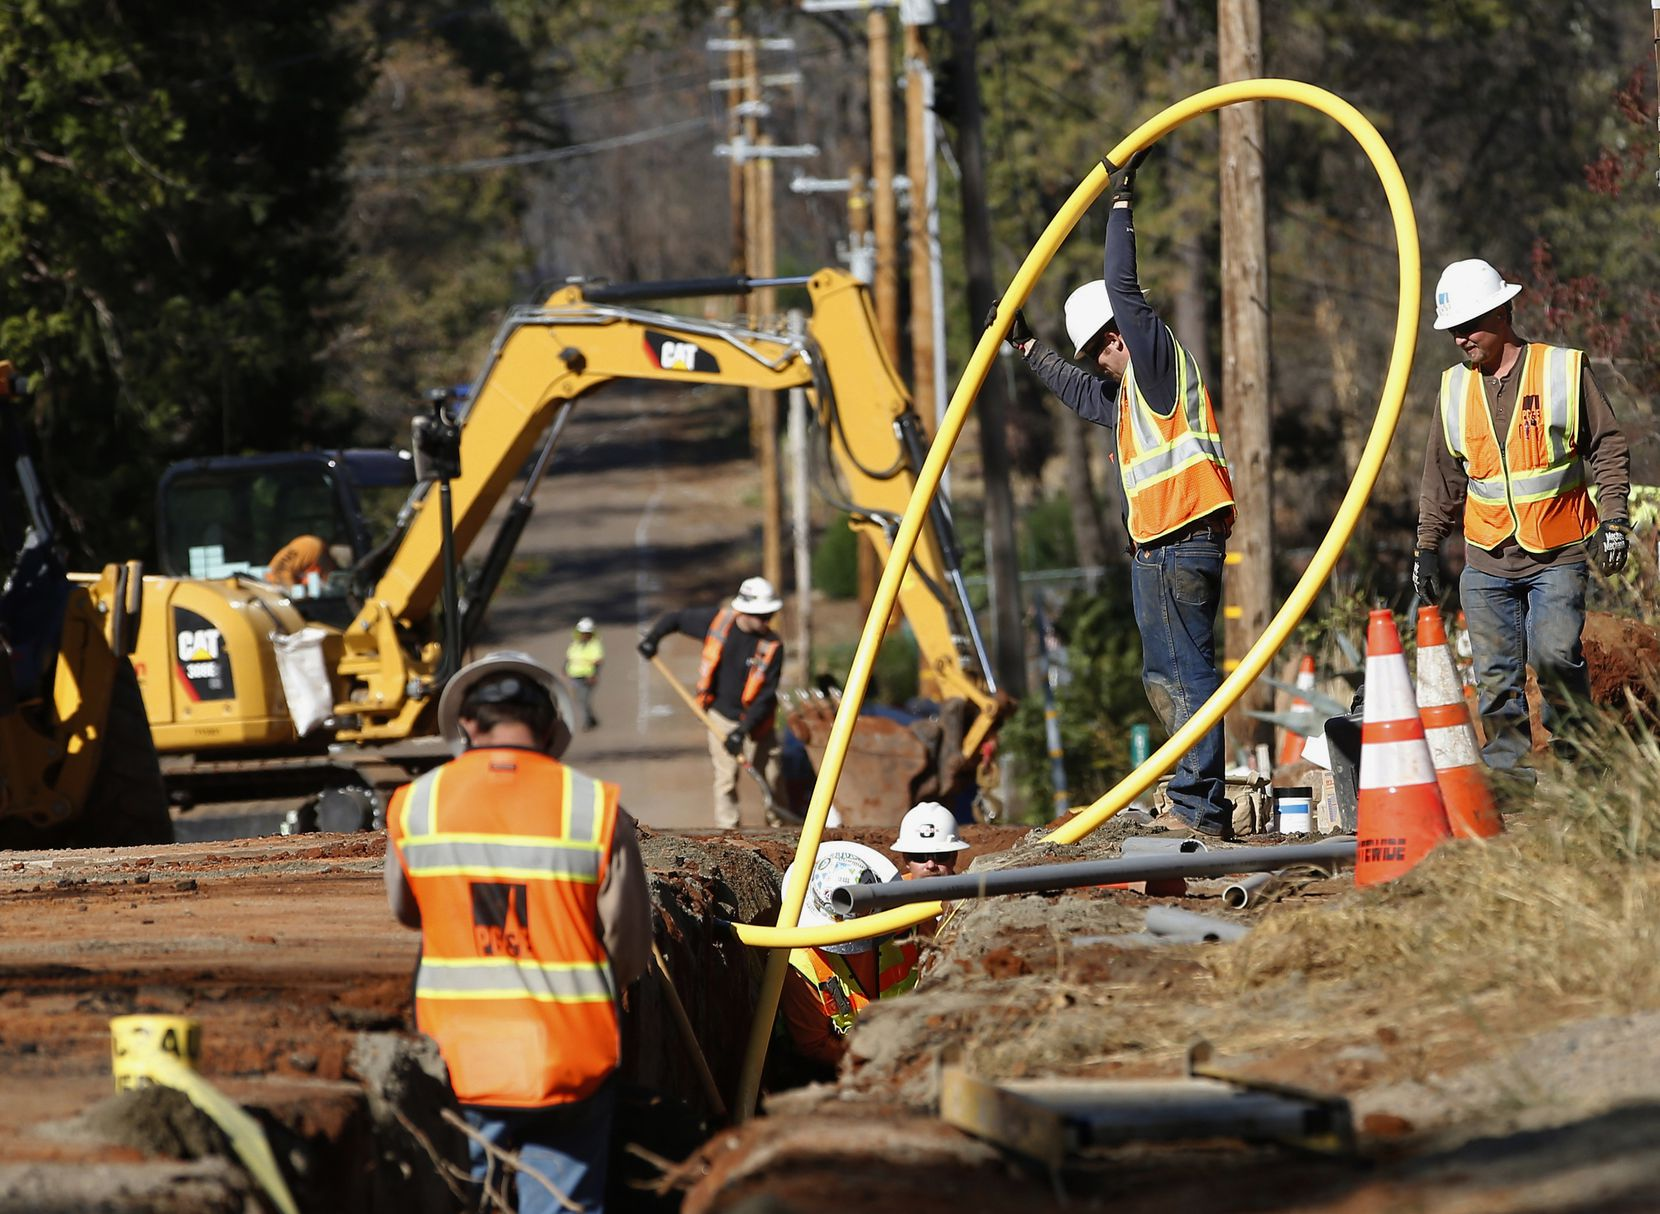 FILE - In this Oct. 18, 2019, file photo, Pacific Gas and Electric Company, workers bury utility lines in Paradise, Calif. A new technology being tested by California utilities, such as Pacific Gas & Electric Co. and Southern California Edison, is aimed at diagnosing problems before they could cause power outages or spark wildfires.